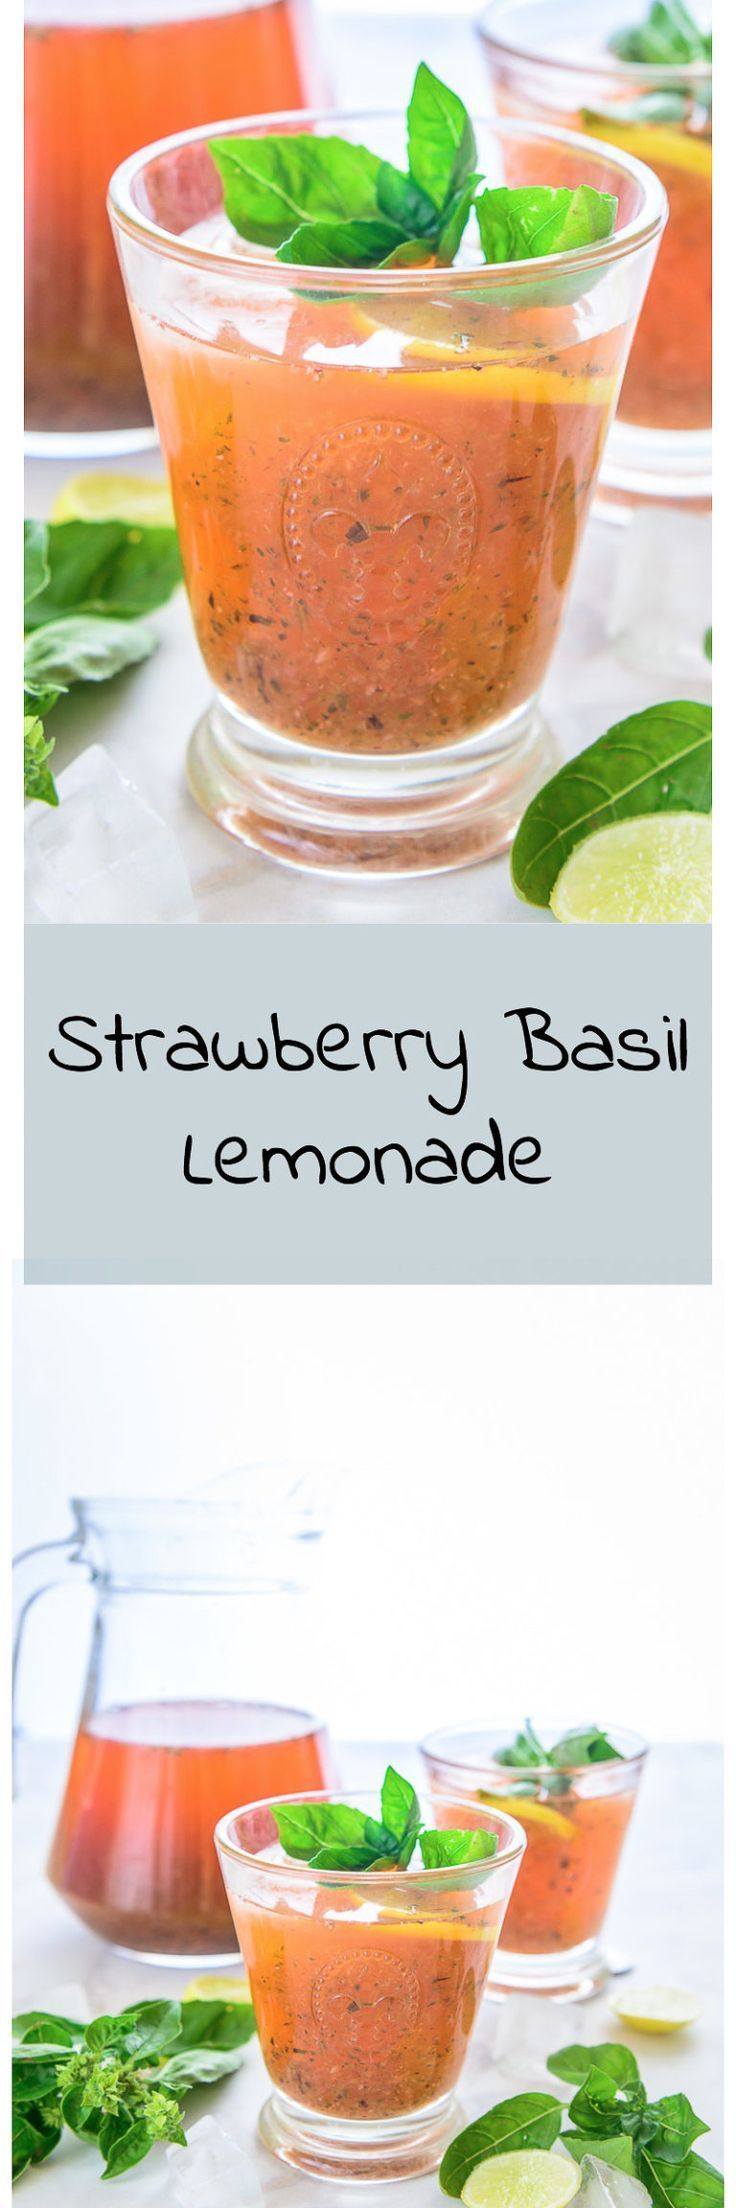 Strawberry Basil Lemonade incorporates the tangyness of lemon with a dash of sweetness of fresh strawberries, basil and heaps of crushed ice. #Drink #Beverage #Strawberry #Basil #Lemon #Summer #Cooler #Recipe